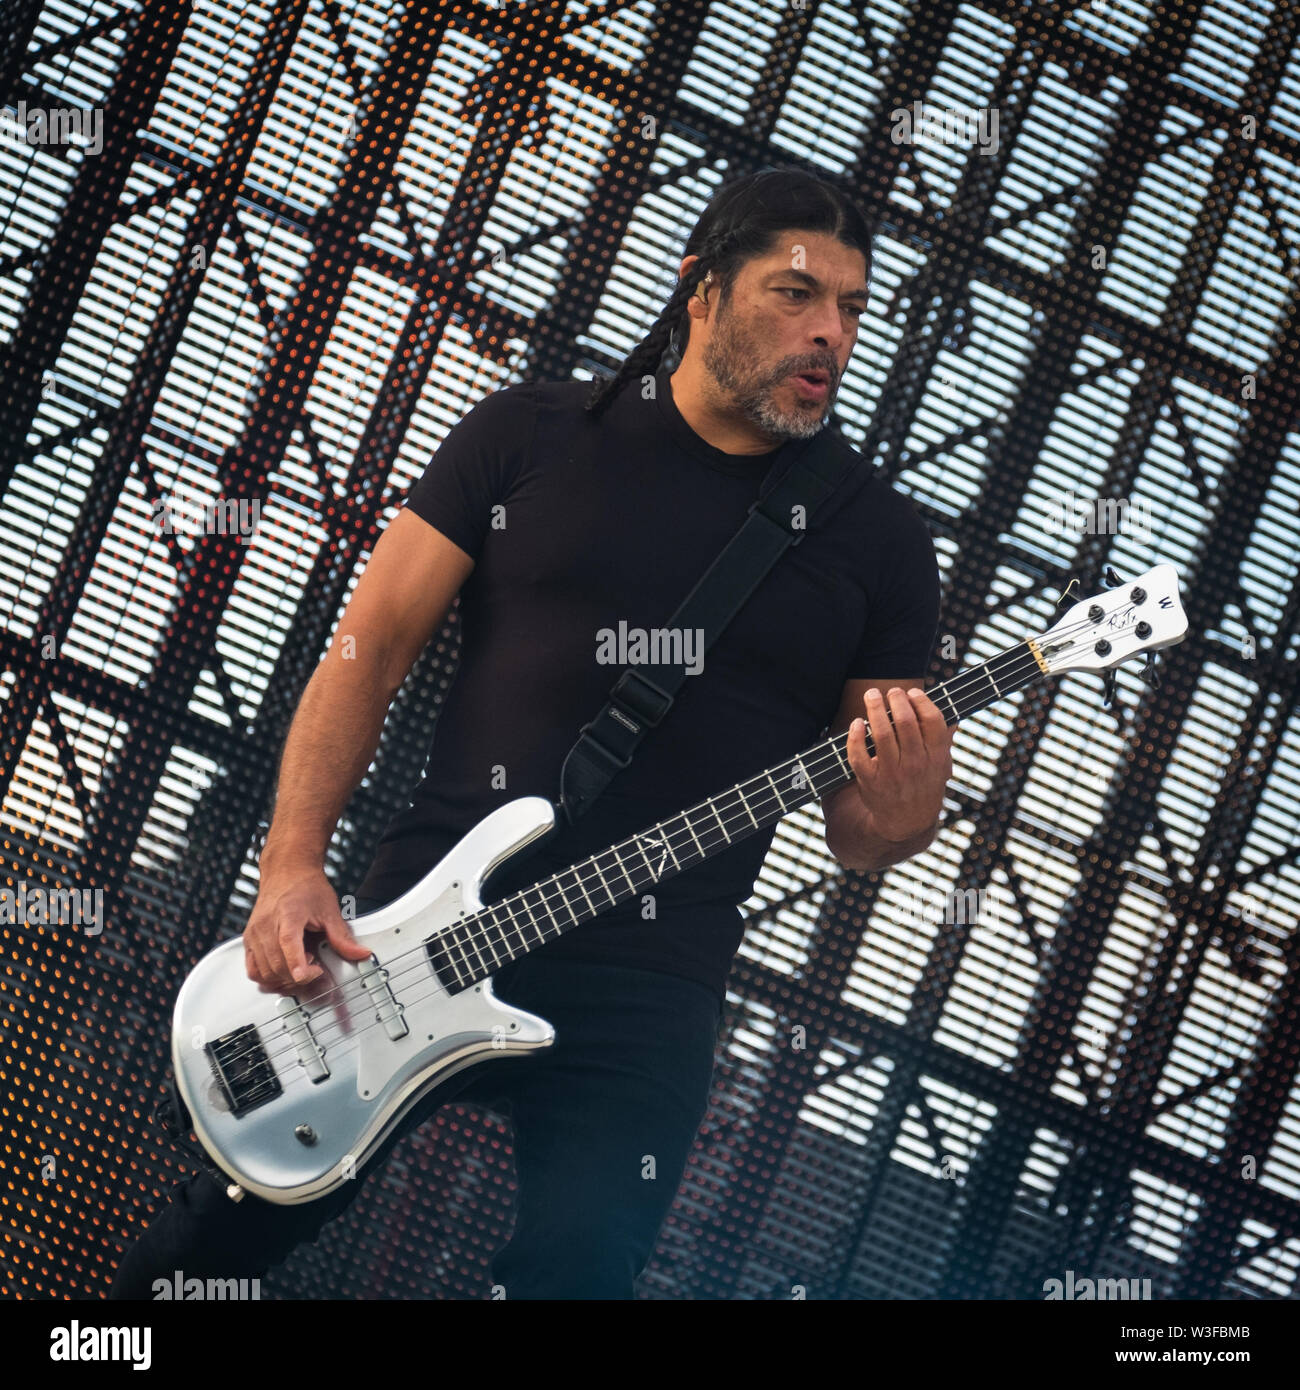 Trondheim, Norway - July 13th, 2019. The American heavy metal band Metallica performs live concerts at Granåsen Arena in Trondheim. Here bass player Robert Trujillo is seen live on stage. (Photo credit: Gonzales Photo - Tor Atle Kleven). - Stock Image